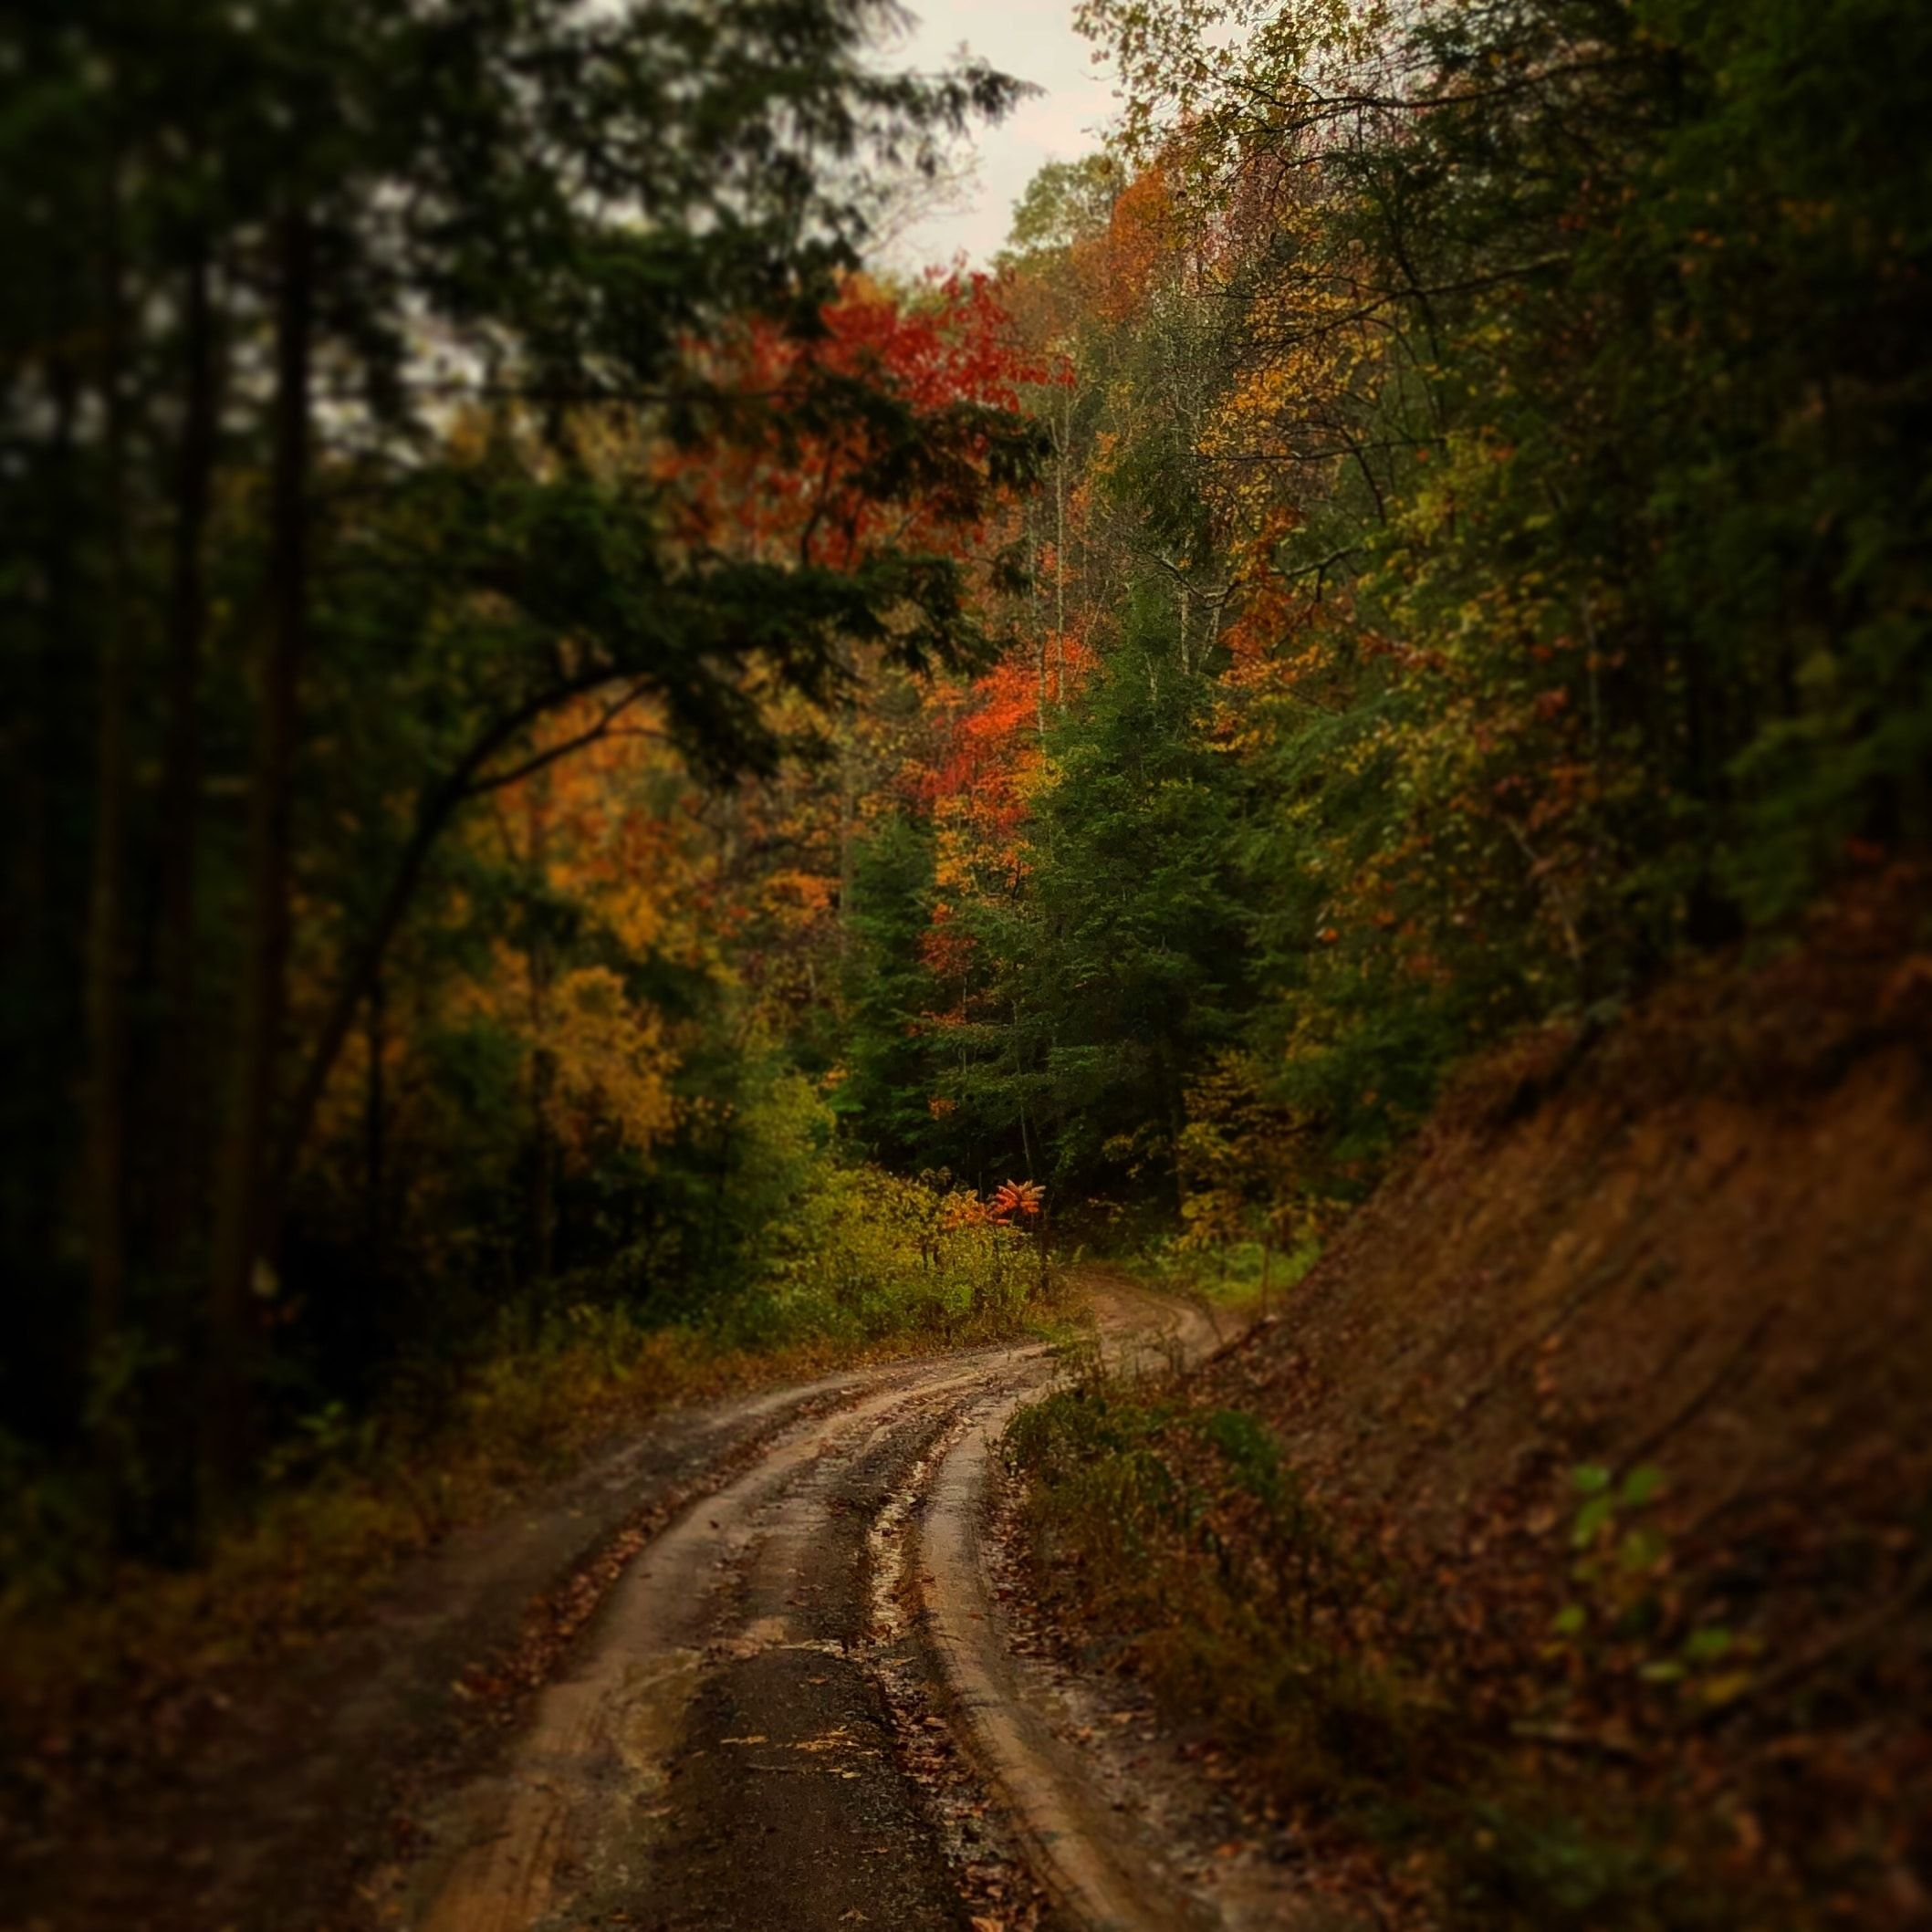 a dirt road in the forest